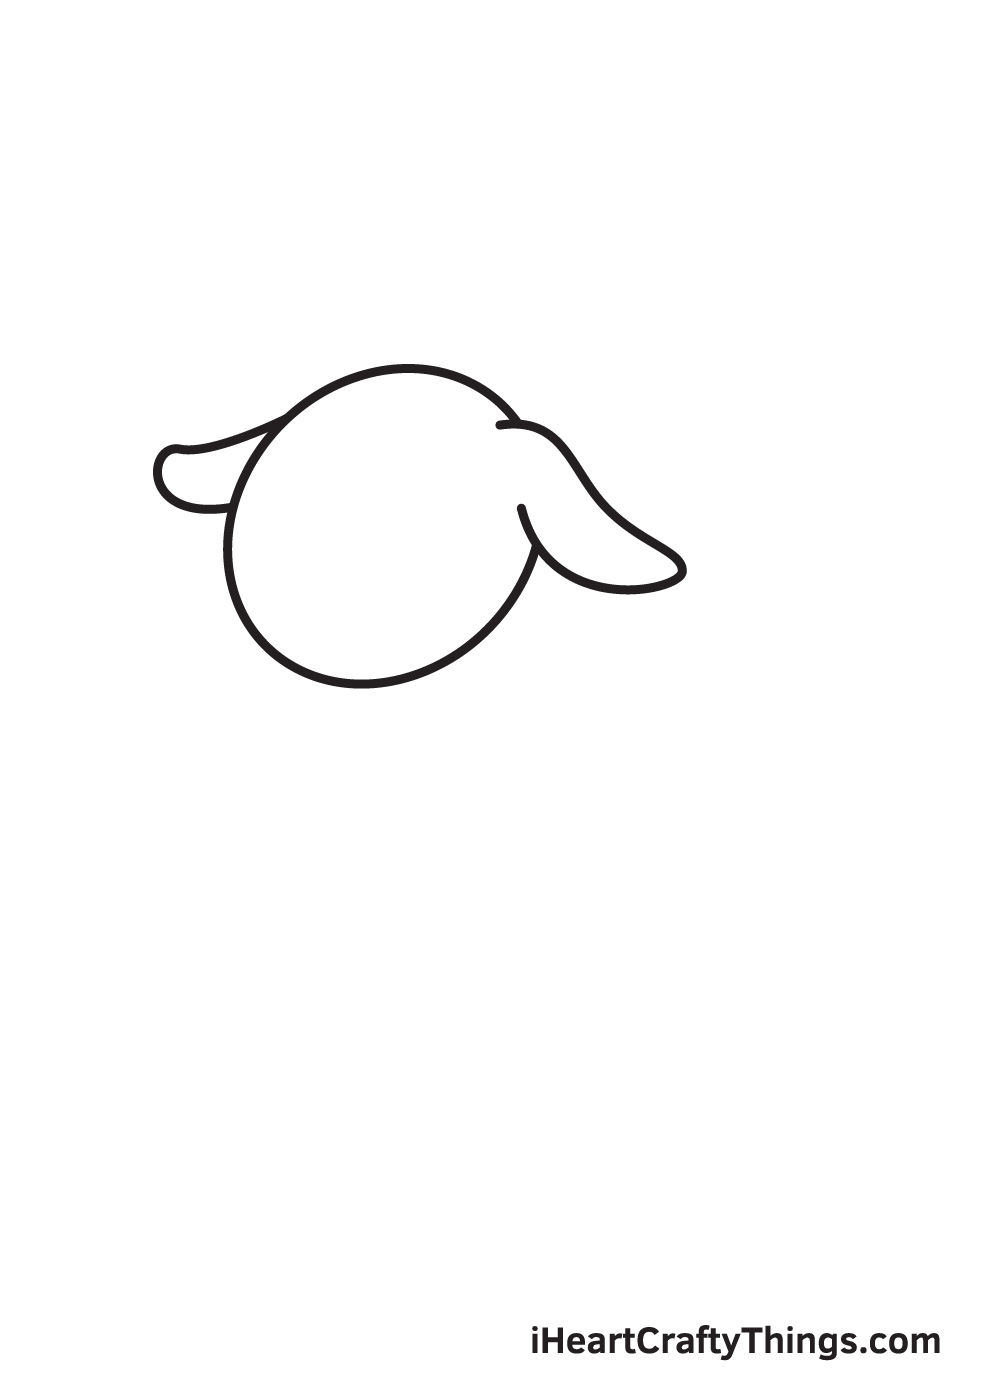 goat drawing - step 2